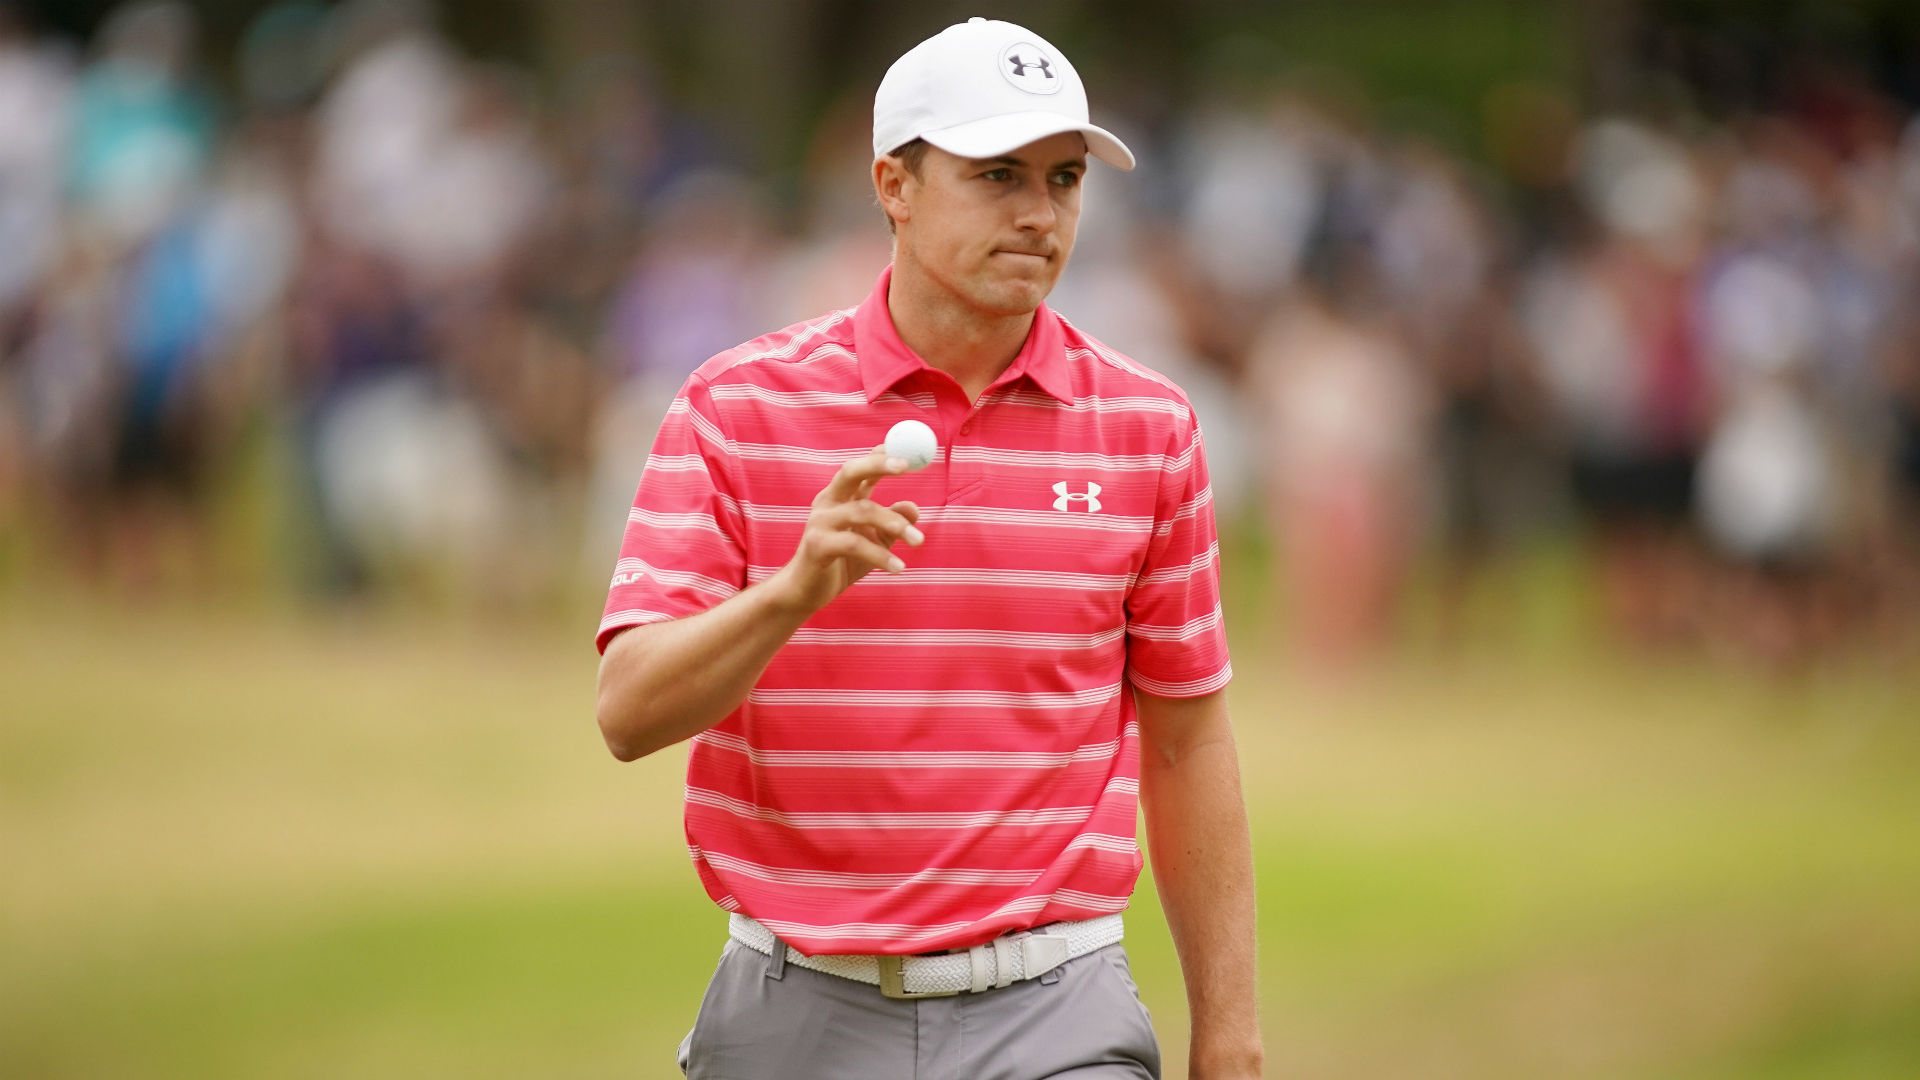 Despite just two top-10 finishes in 2018, Jordan Spieth is unconcerned by his lack of form ahead of the first major of the season.